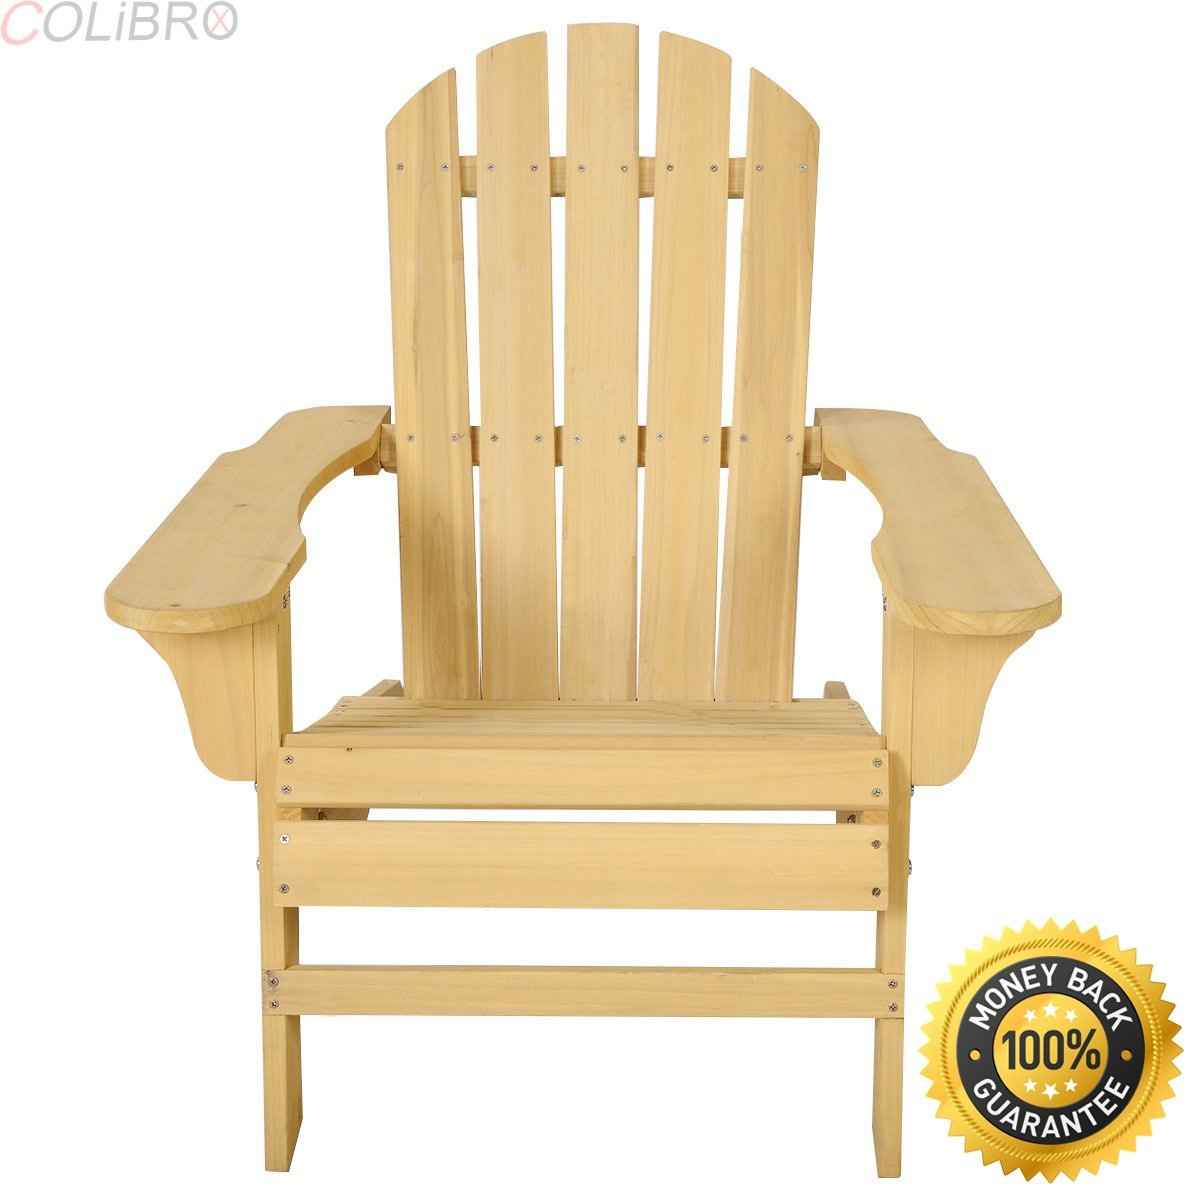 COLIBROX--Outdoor Natural Fir Wood Adirondack Rocking Chair Patio Deck Garden Furniture. Natural finish adds a classic outdoor style to your patio or backyard setting.